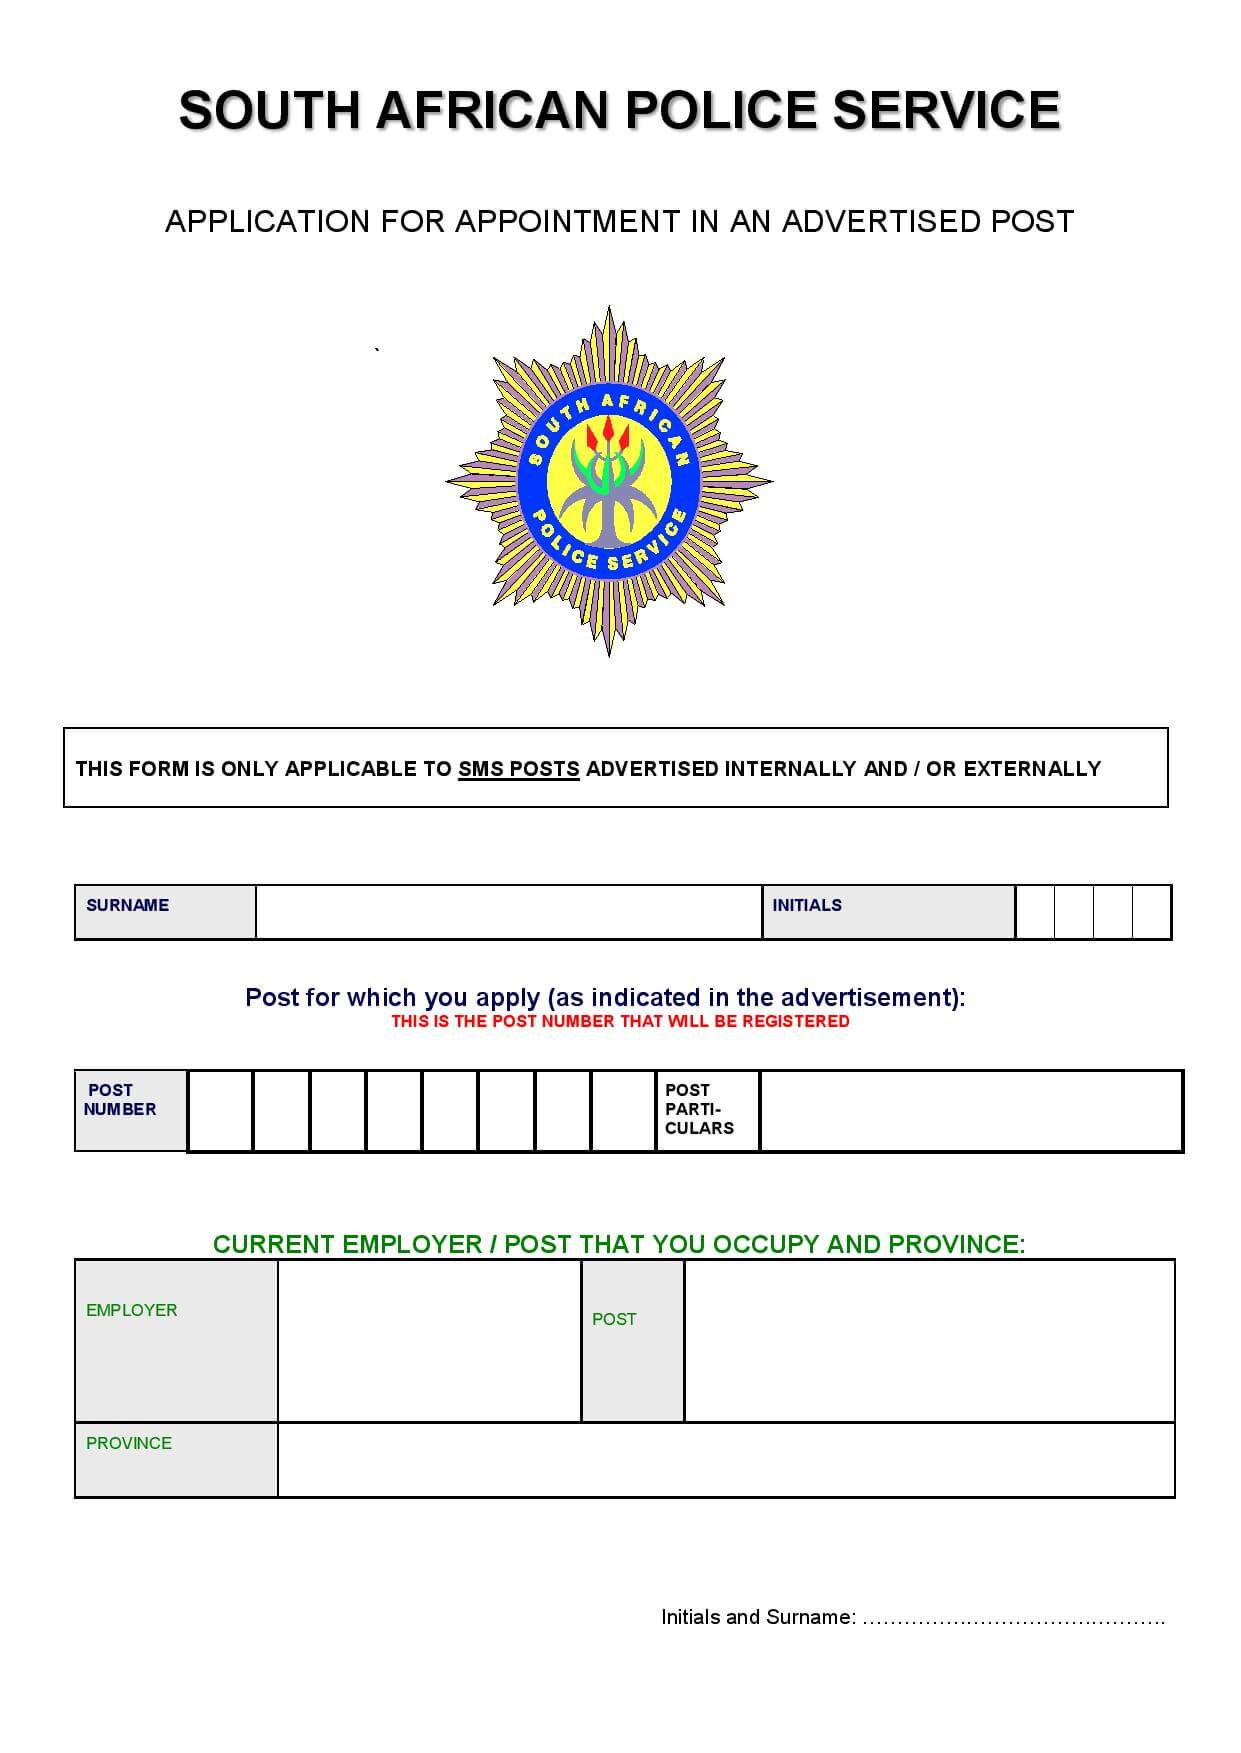 SAPS-Application-Form Job Application Forms To Fill Out on job application forms to save, job application online fill out, job application clip art, cold stone job application print out, blank job application form print out, job application templates, sample job application fill out,